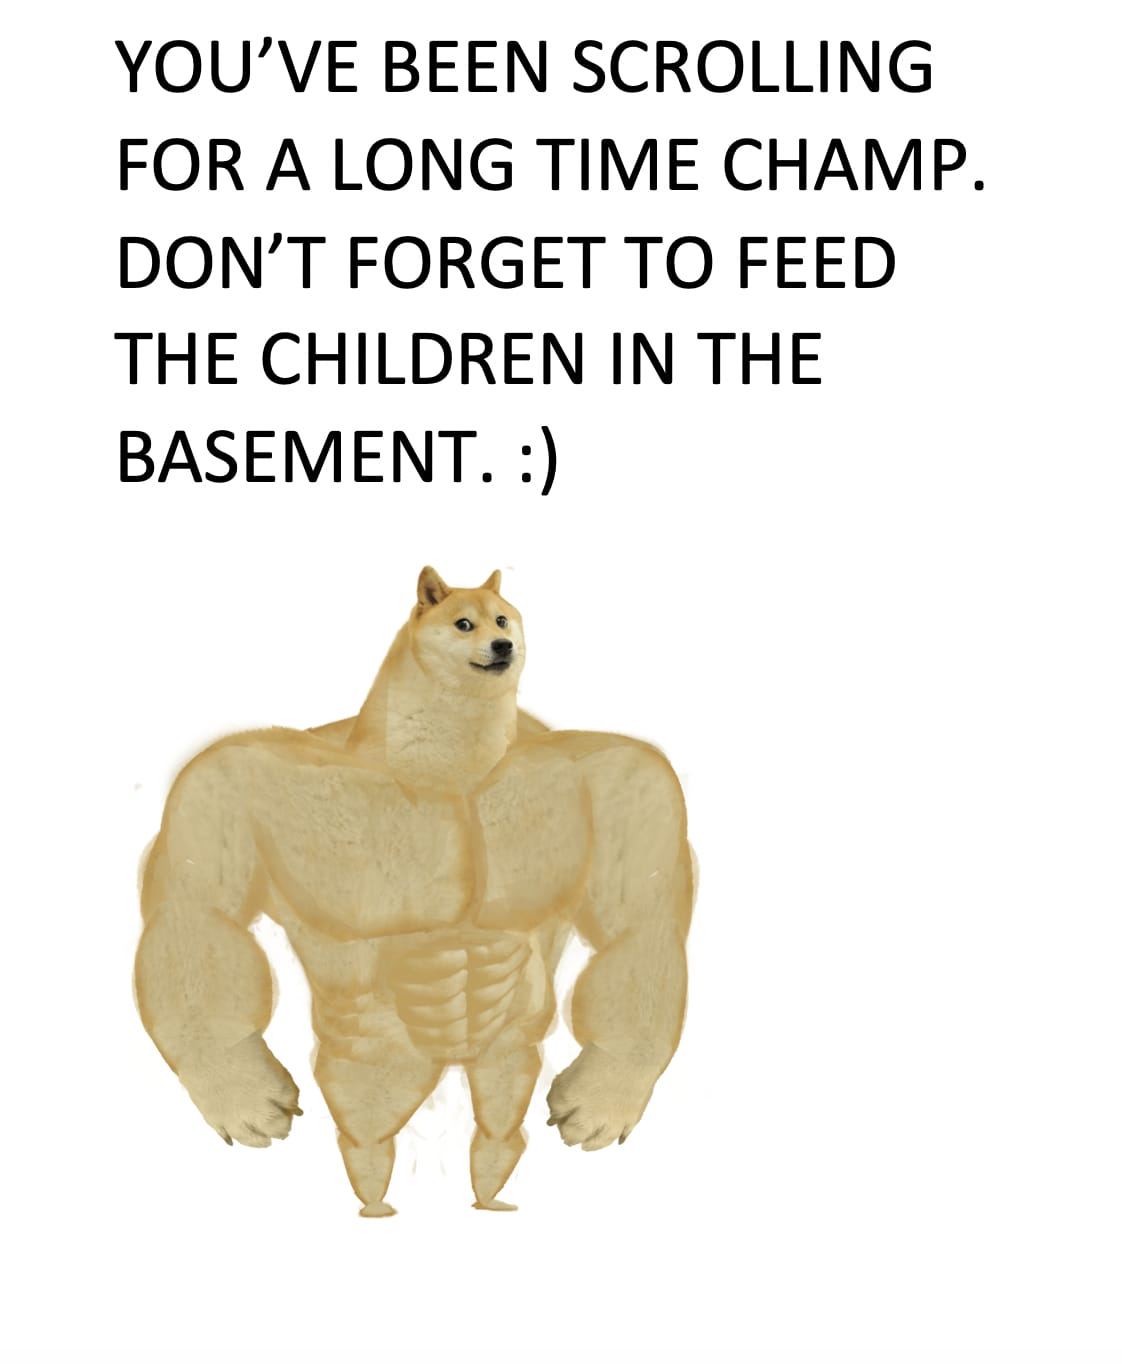 Don't forget to feed the children in the basement